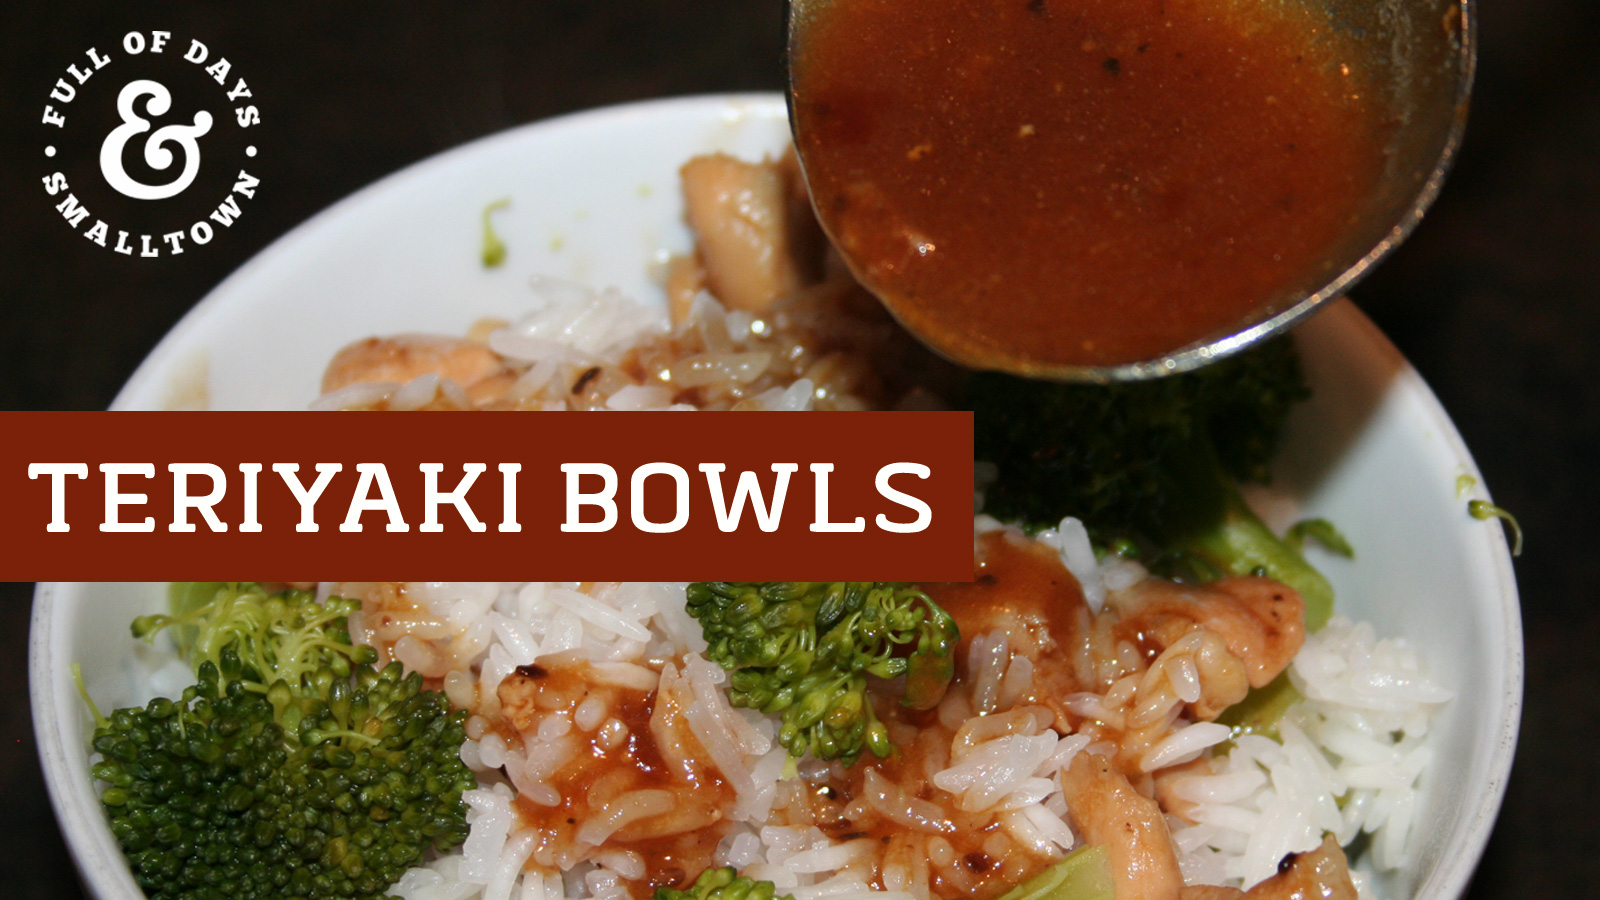 DIY Homemade Teriyaki Bowls Recipe Header